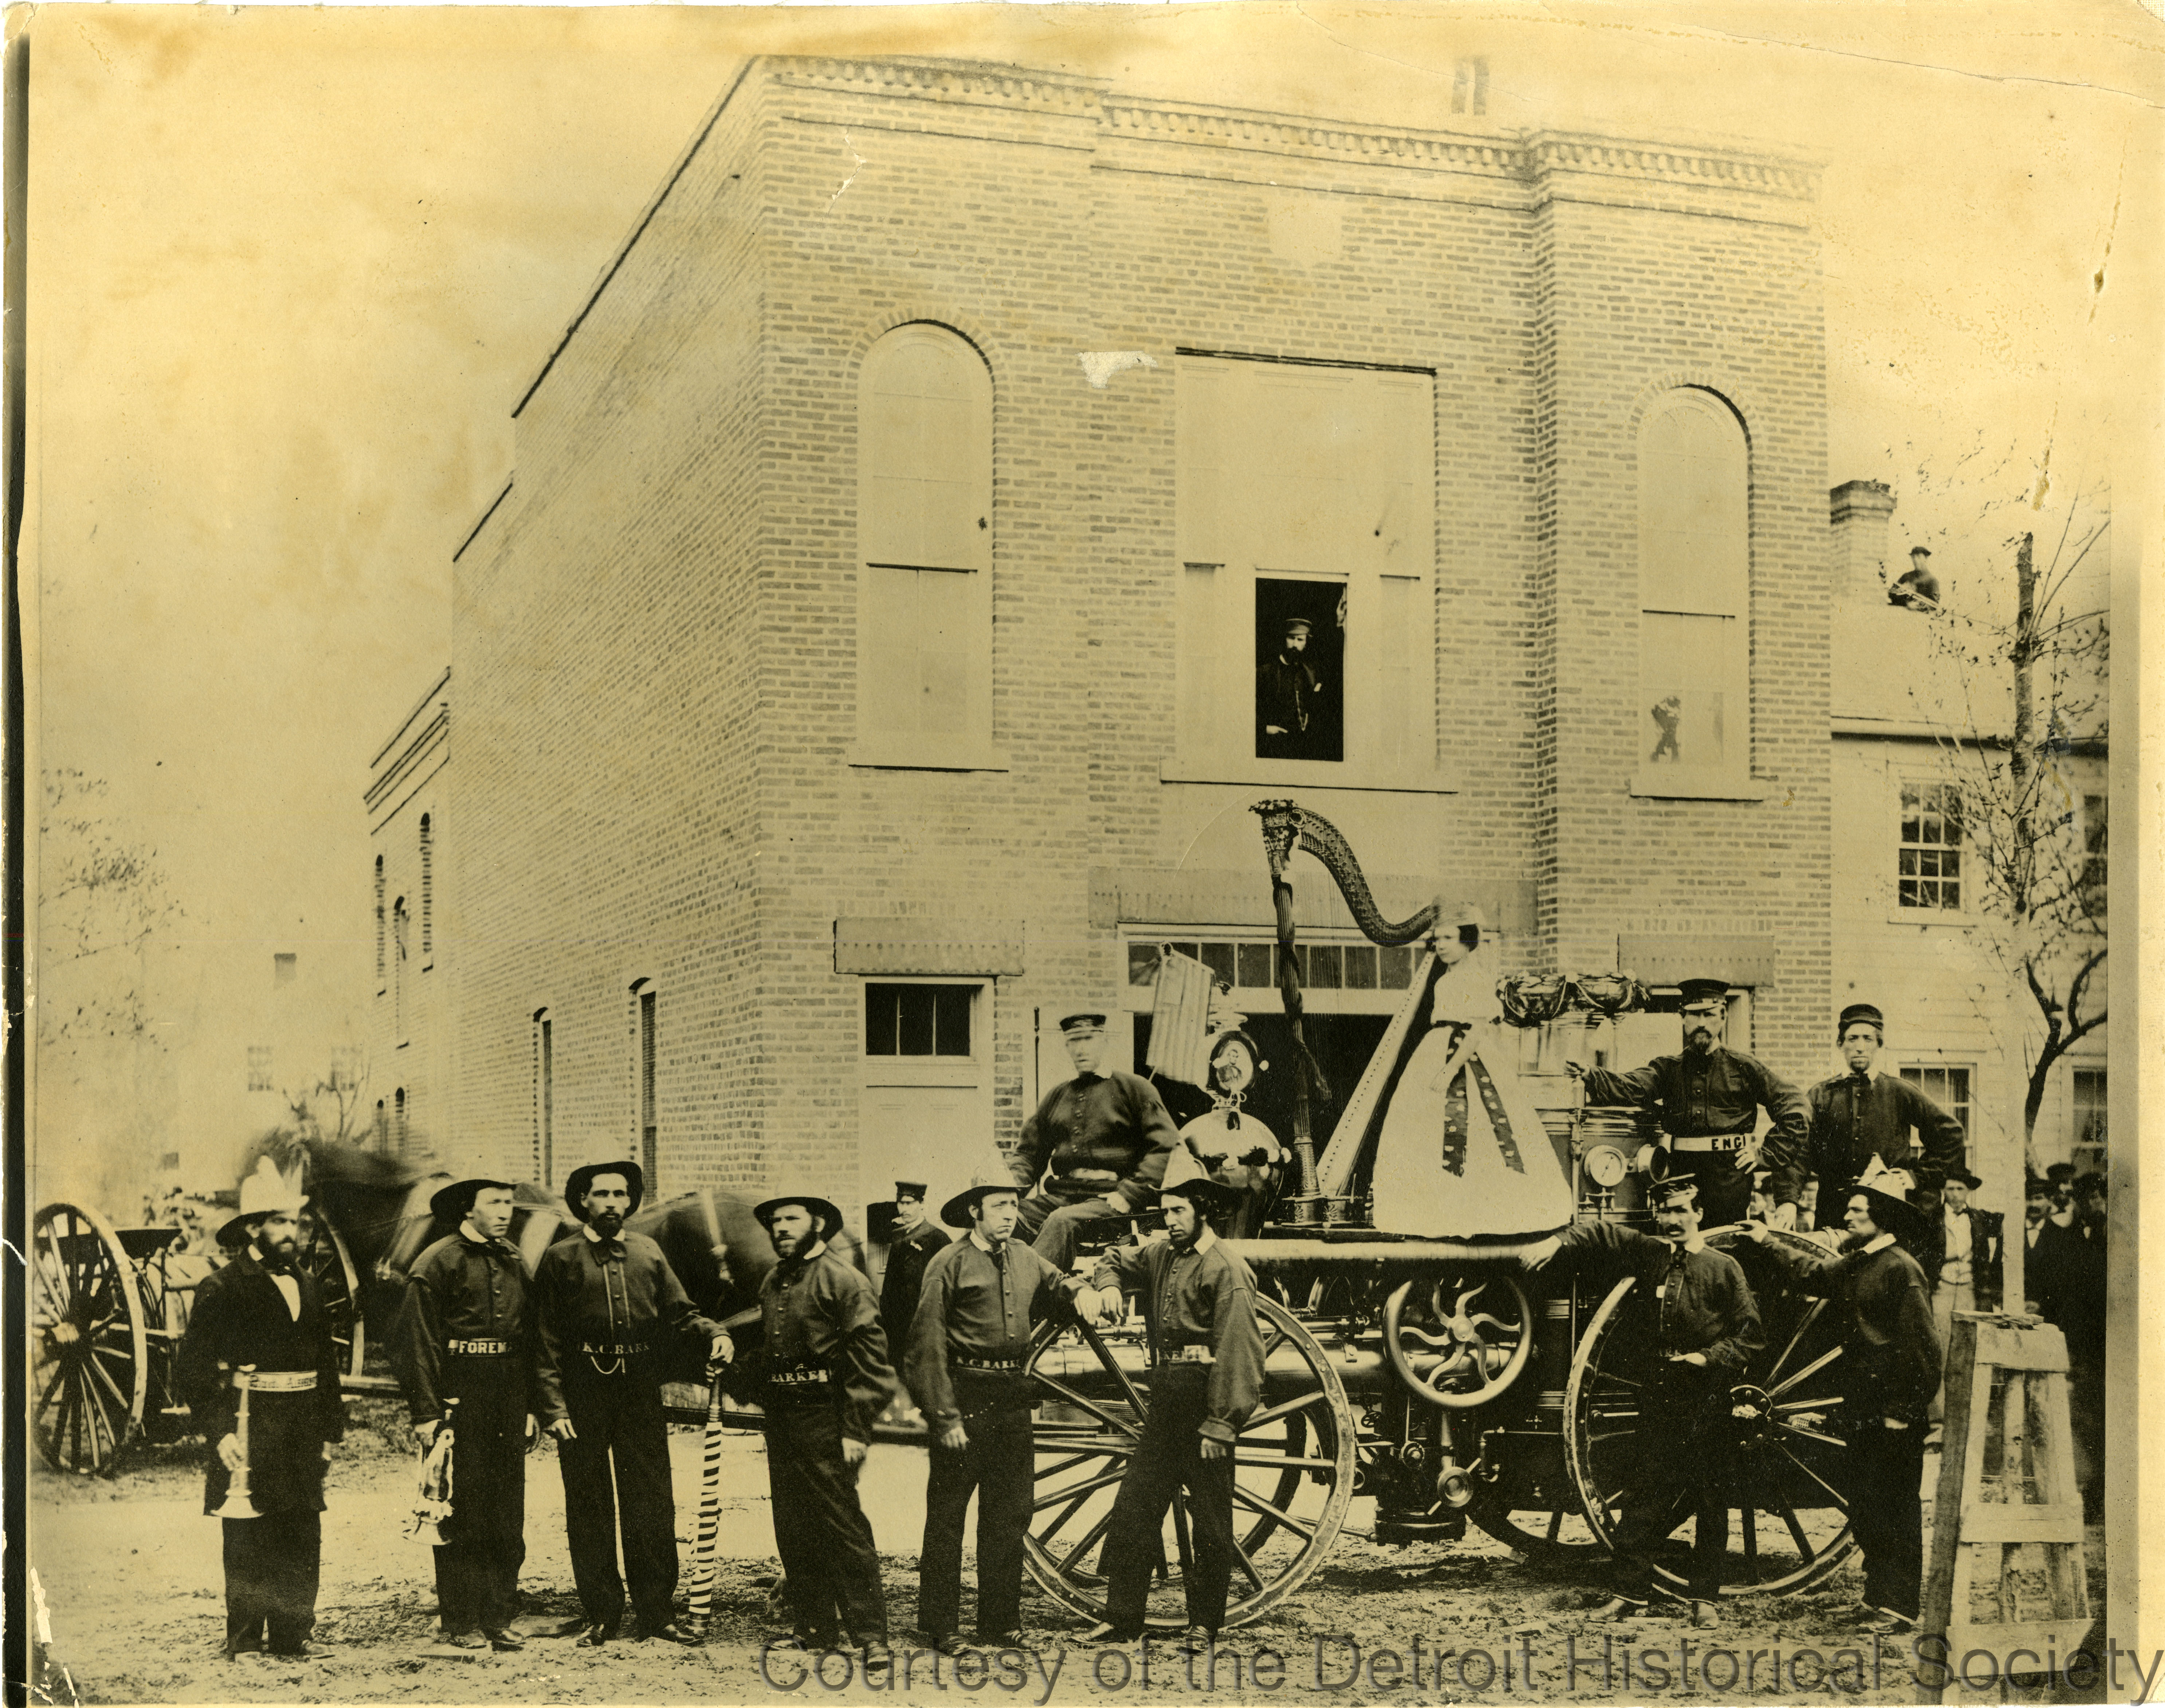 The firefighters of Detroit's K.C. Barker Company No. 4 posed with their engine decorated for a Lincoln memorial parade